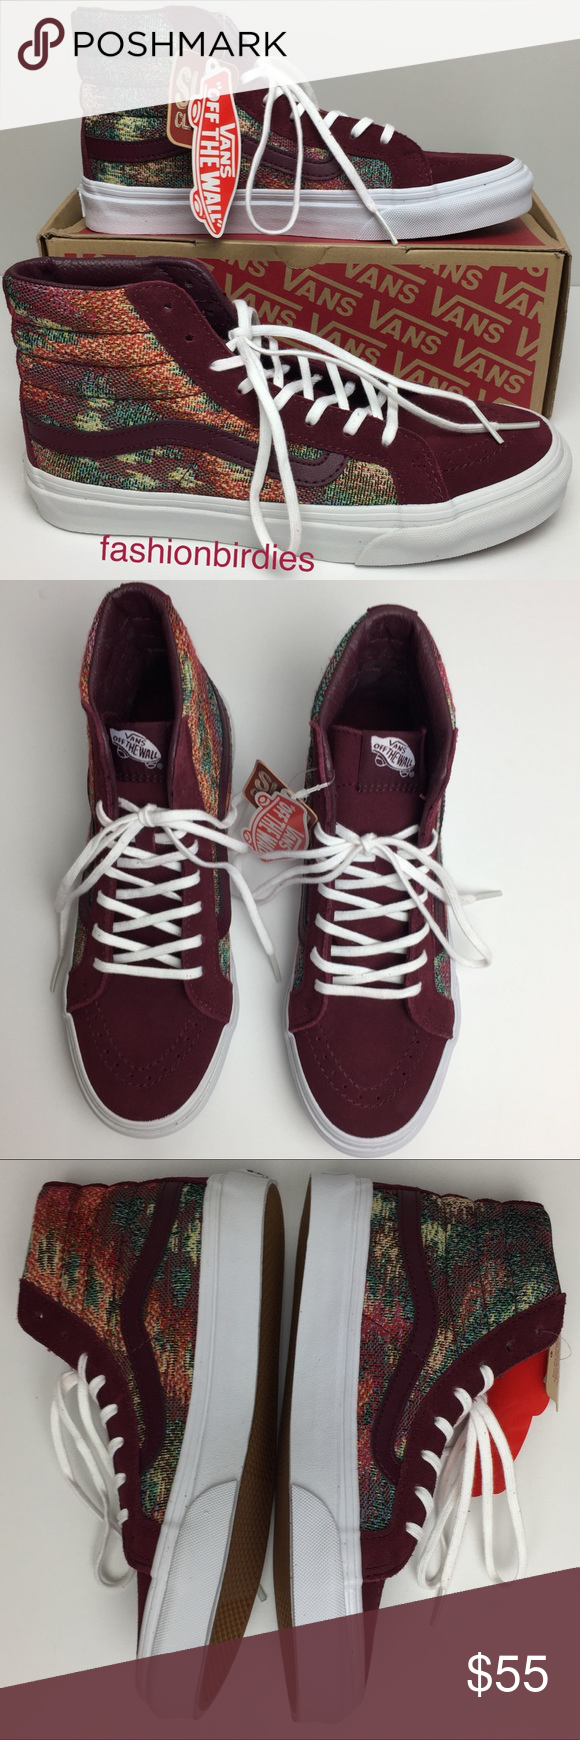 0c229d409b Vans SK8-Hi Slim Italian Weave Port Royale Beautiful rich jewel tone woven  pattern skate high top shoes. Suede and woven textile upper.